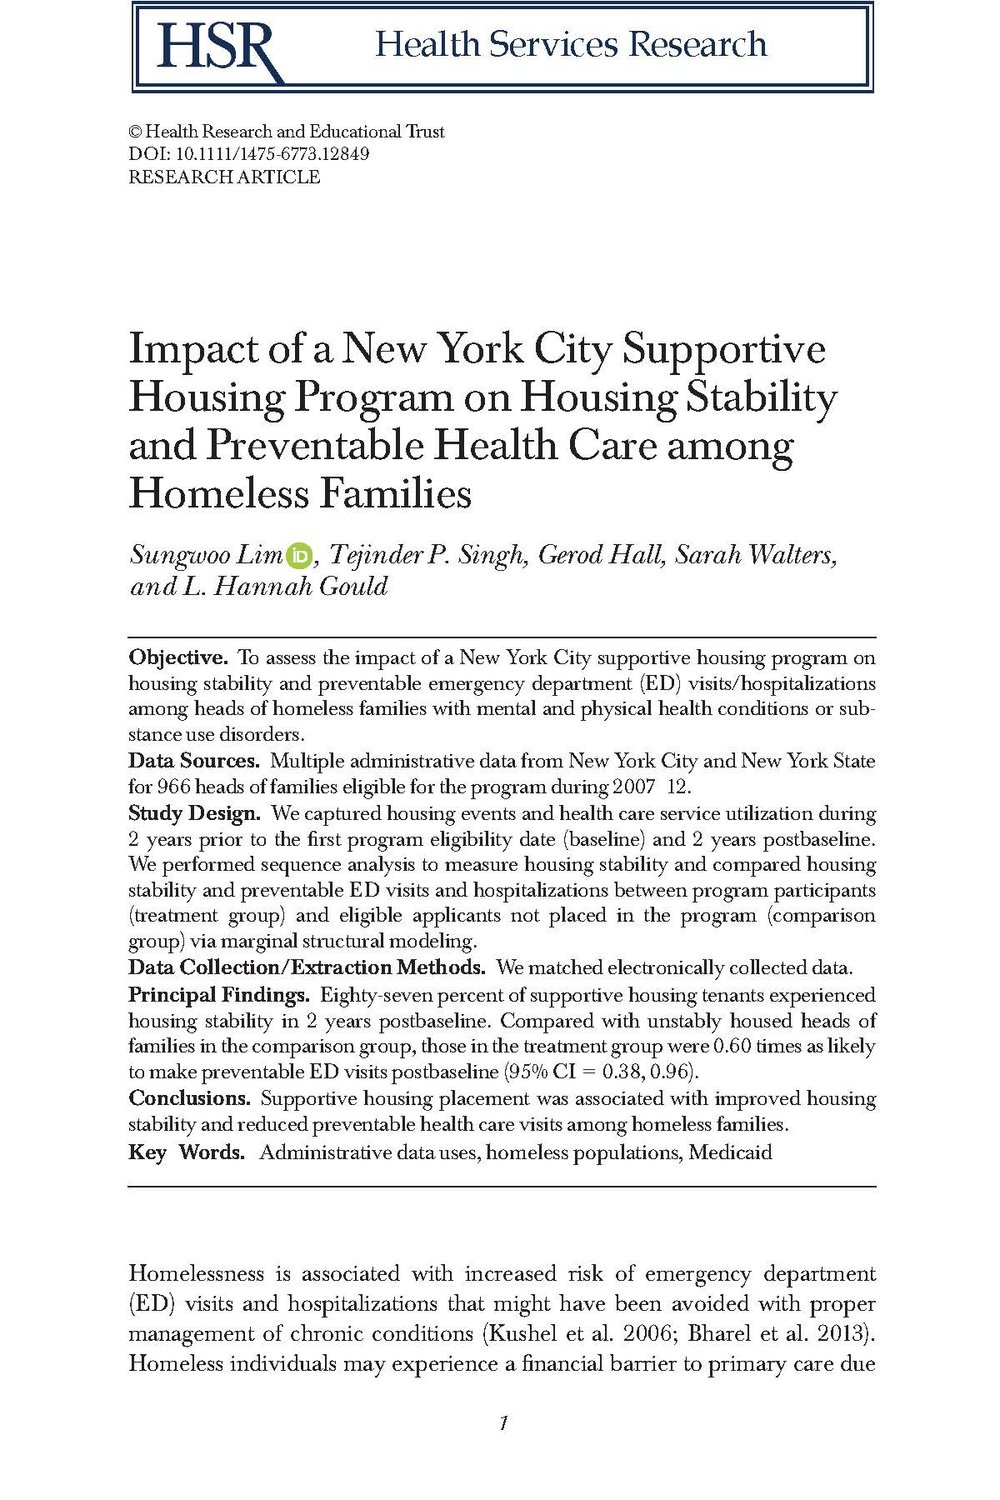 Impact NYC Supportive Housing Program on Housing Stability -Preventable Health Care Homeless Families_Page_01.jpg